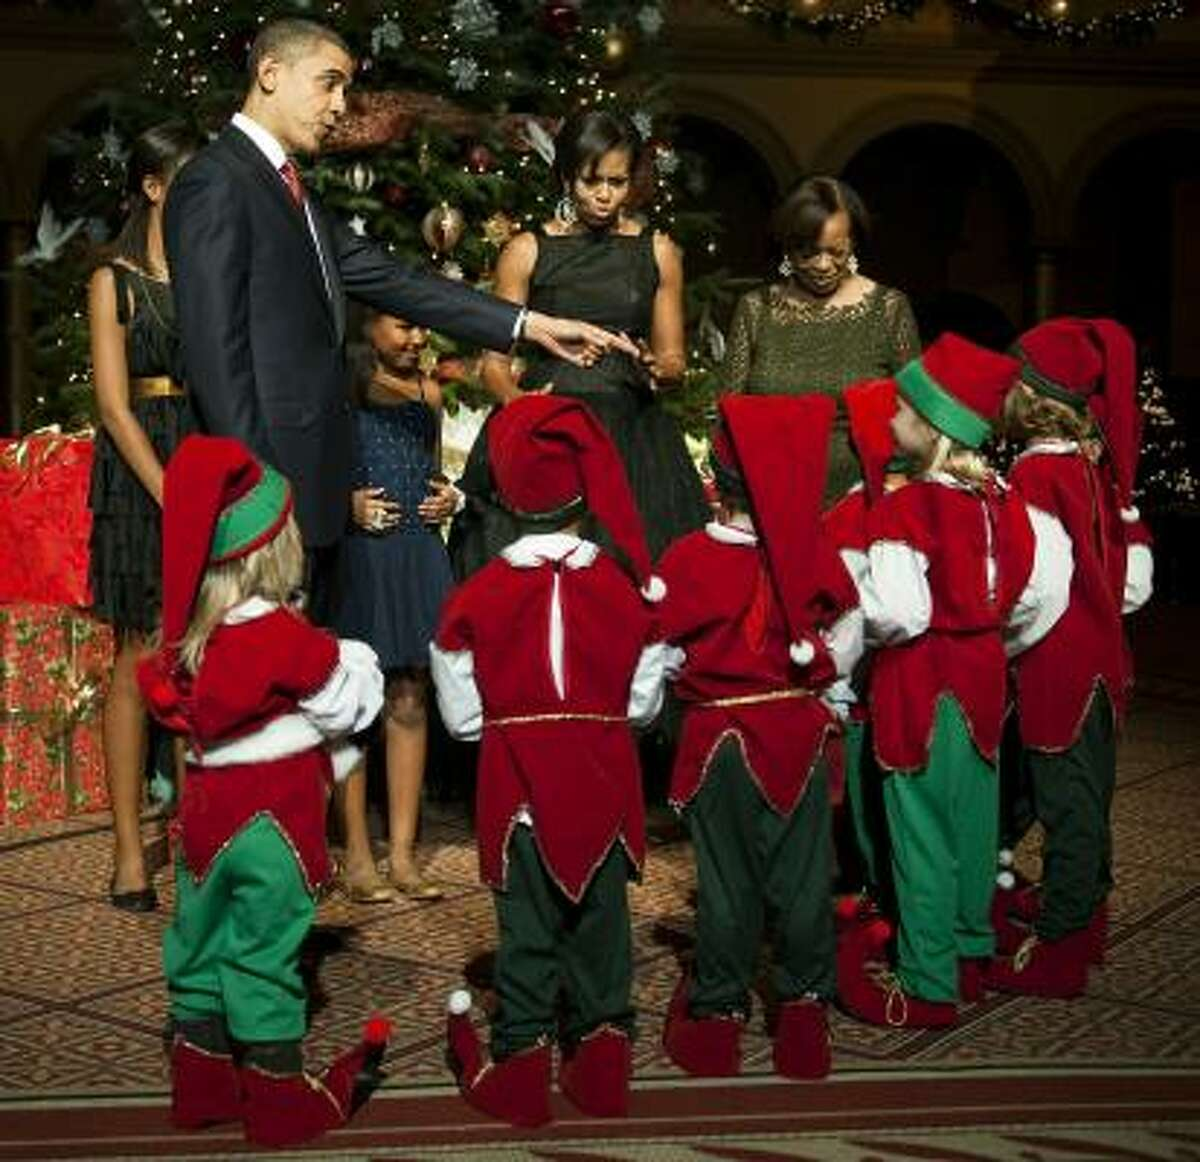 Obama instructs the elves about labor laws and U.S. relations with the North Pole.